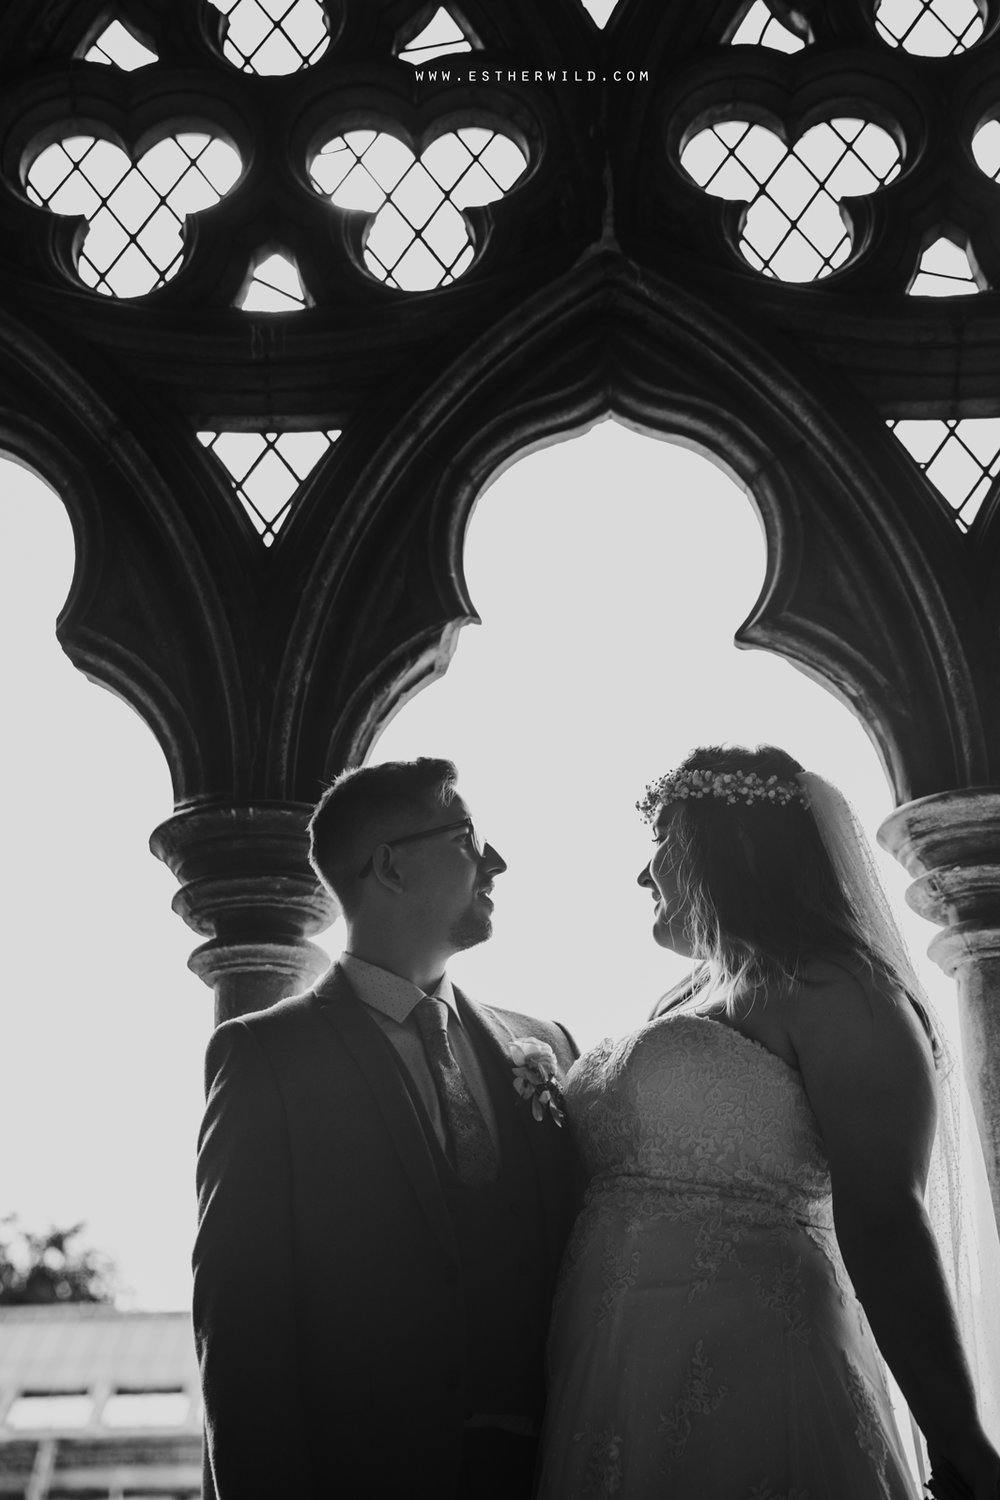 Norwich_Castle_Arcade_Grosvenor_Chip_Birdcage_Cathedral_Cloisters_Refectory_Wedding_Photography_Esther_Wild_Photographer_Norfolk_Kings_Lynn_3R8A1857.jpg